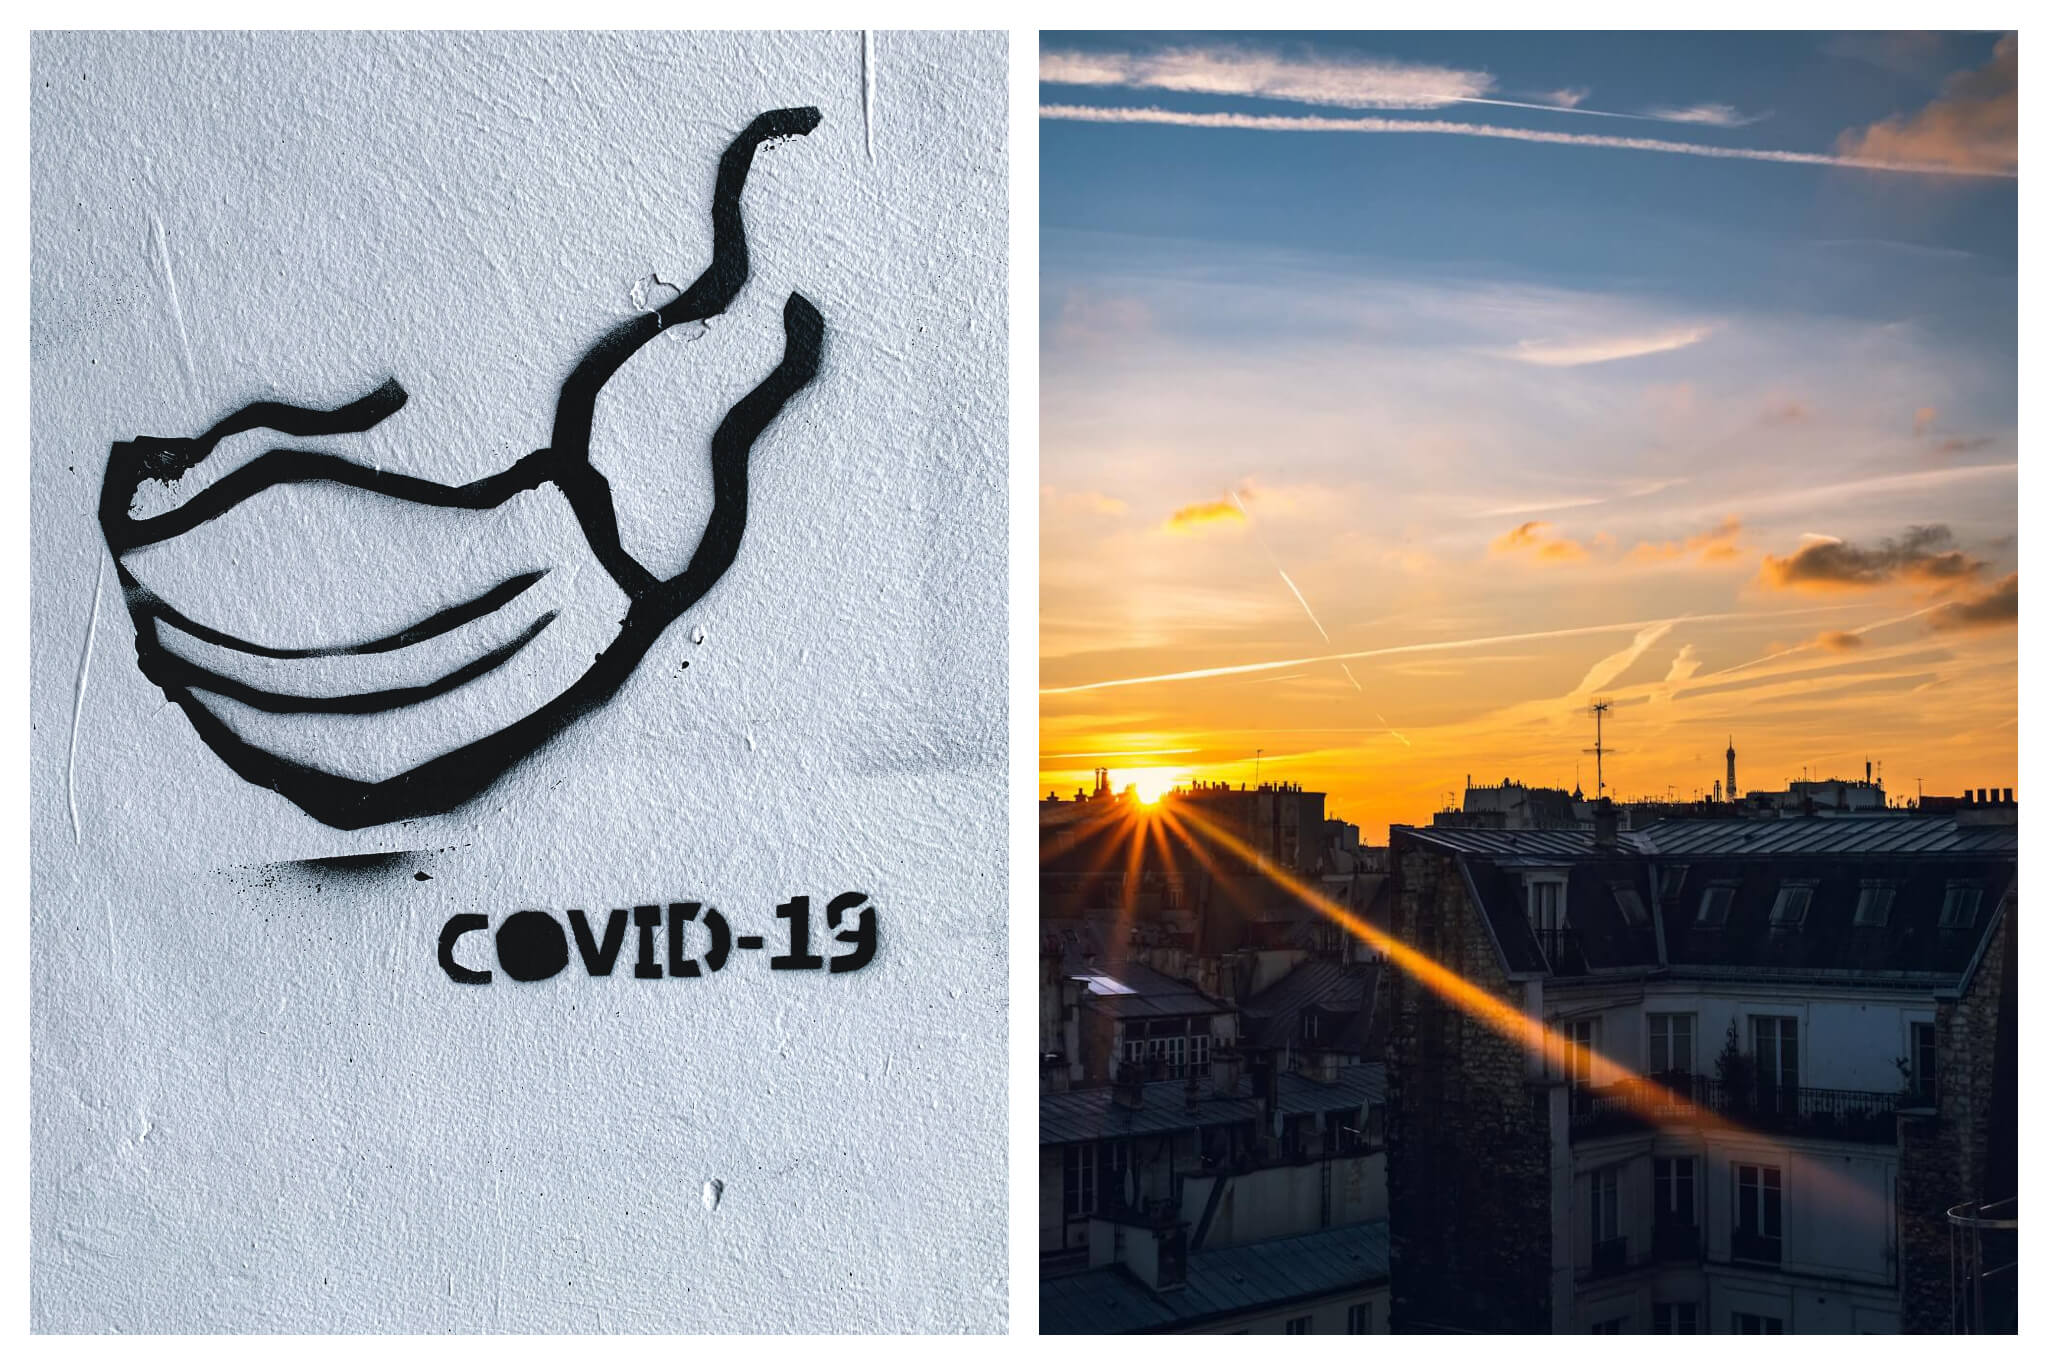 """Left: Black graffiti of a face mask with the phrase """"COVID-19"""" on a white wall, Right: The sun sets over rooftops in Parisian apartments, orange light is cast into the sky"""